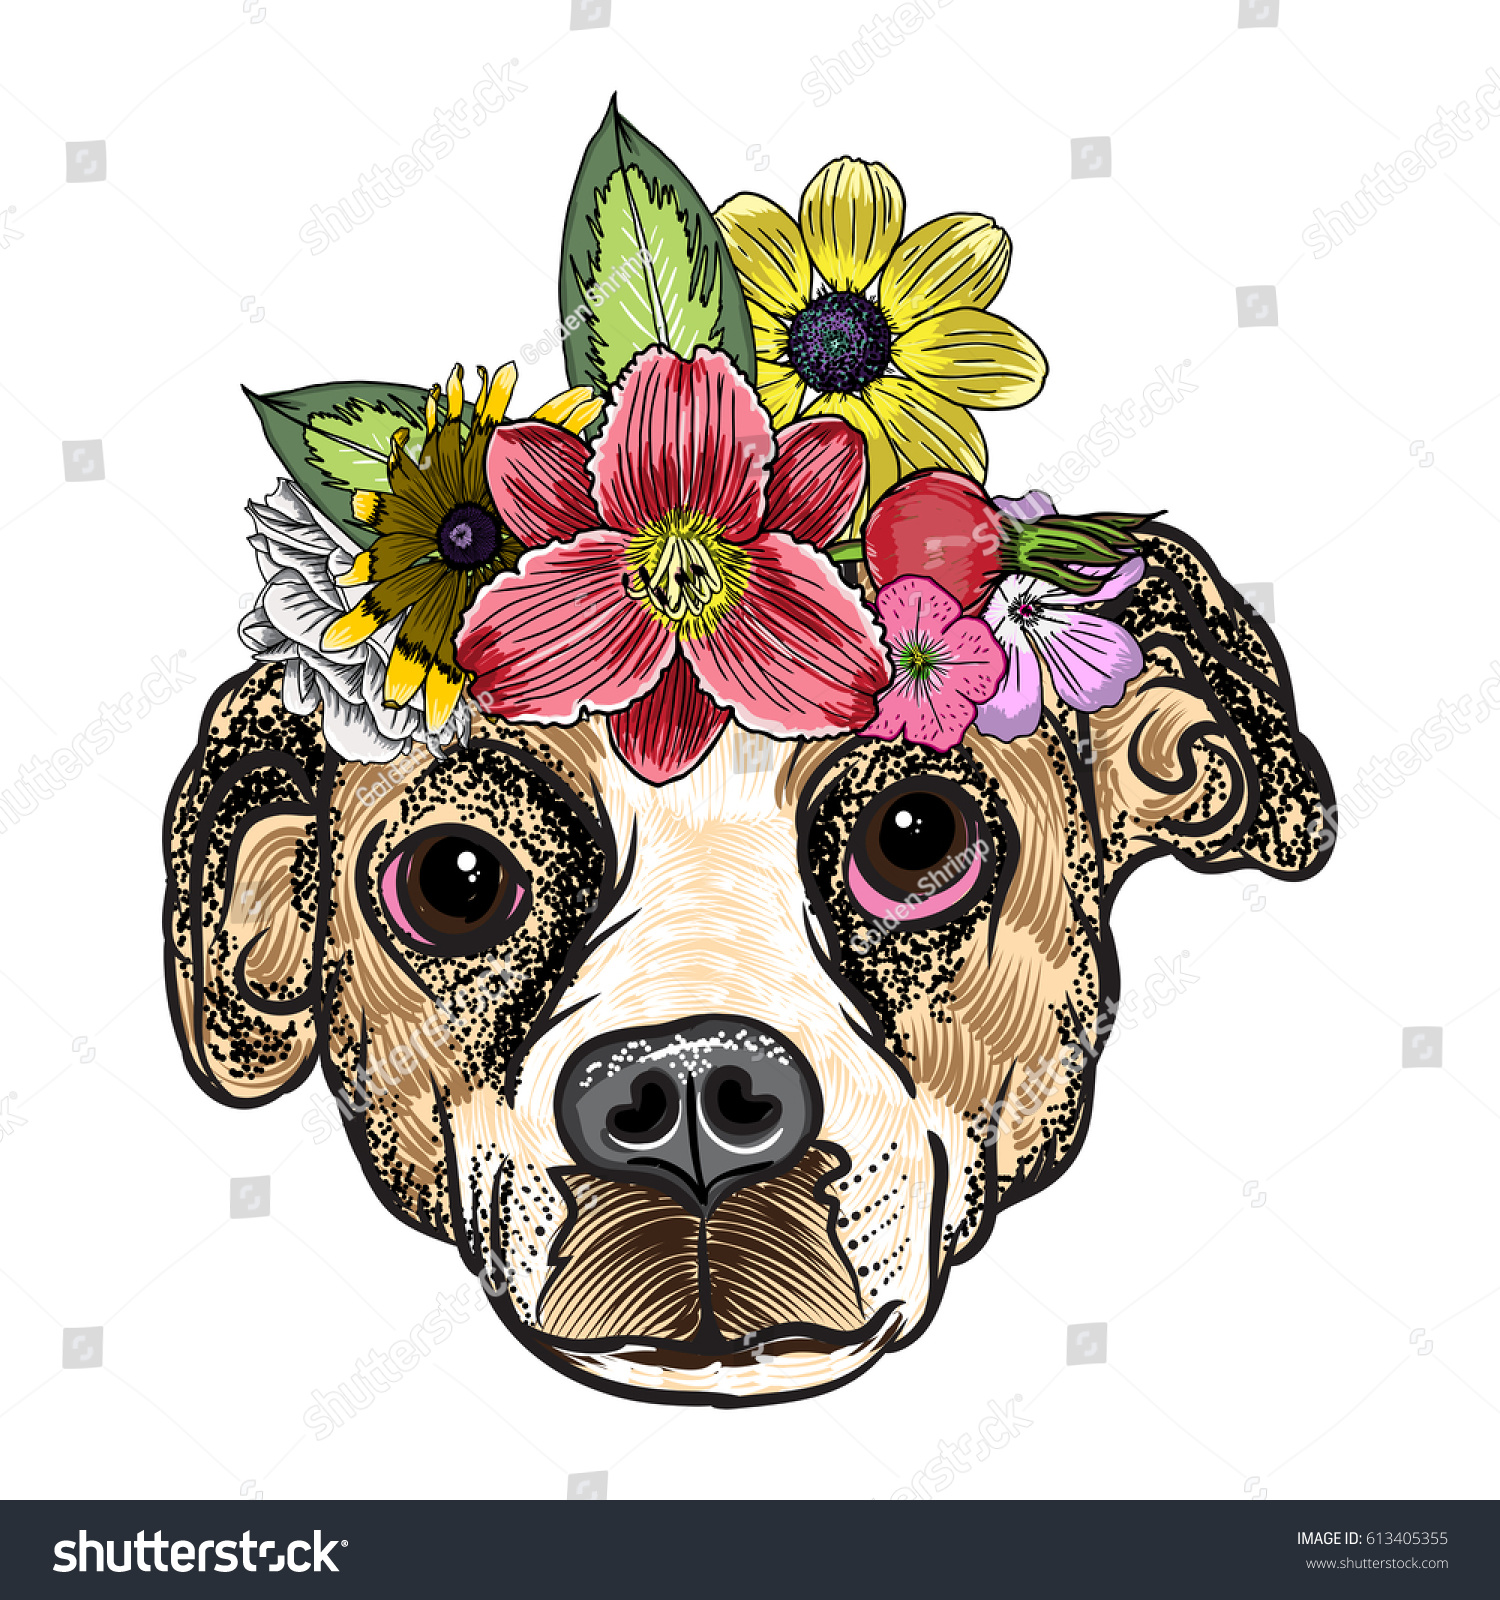 Ilustracion De Stock Sobre Beagle Puppy Exotic Flower Roses Wreath 613405355